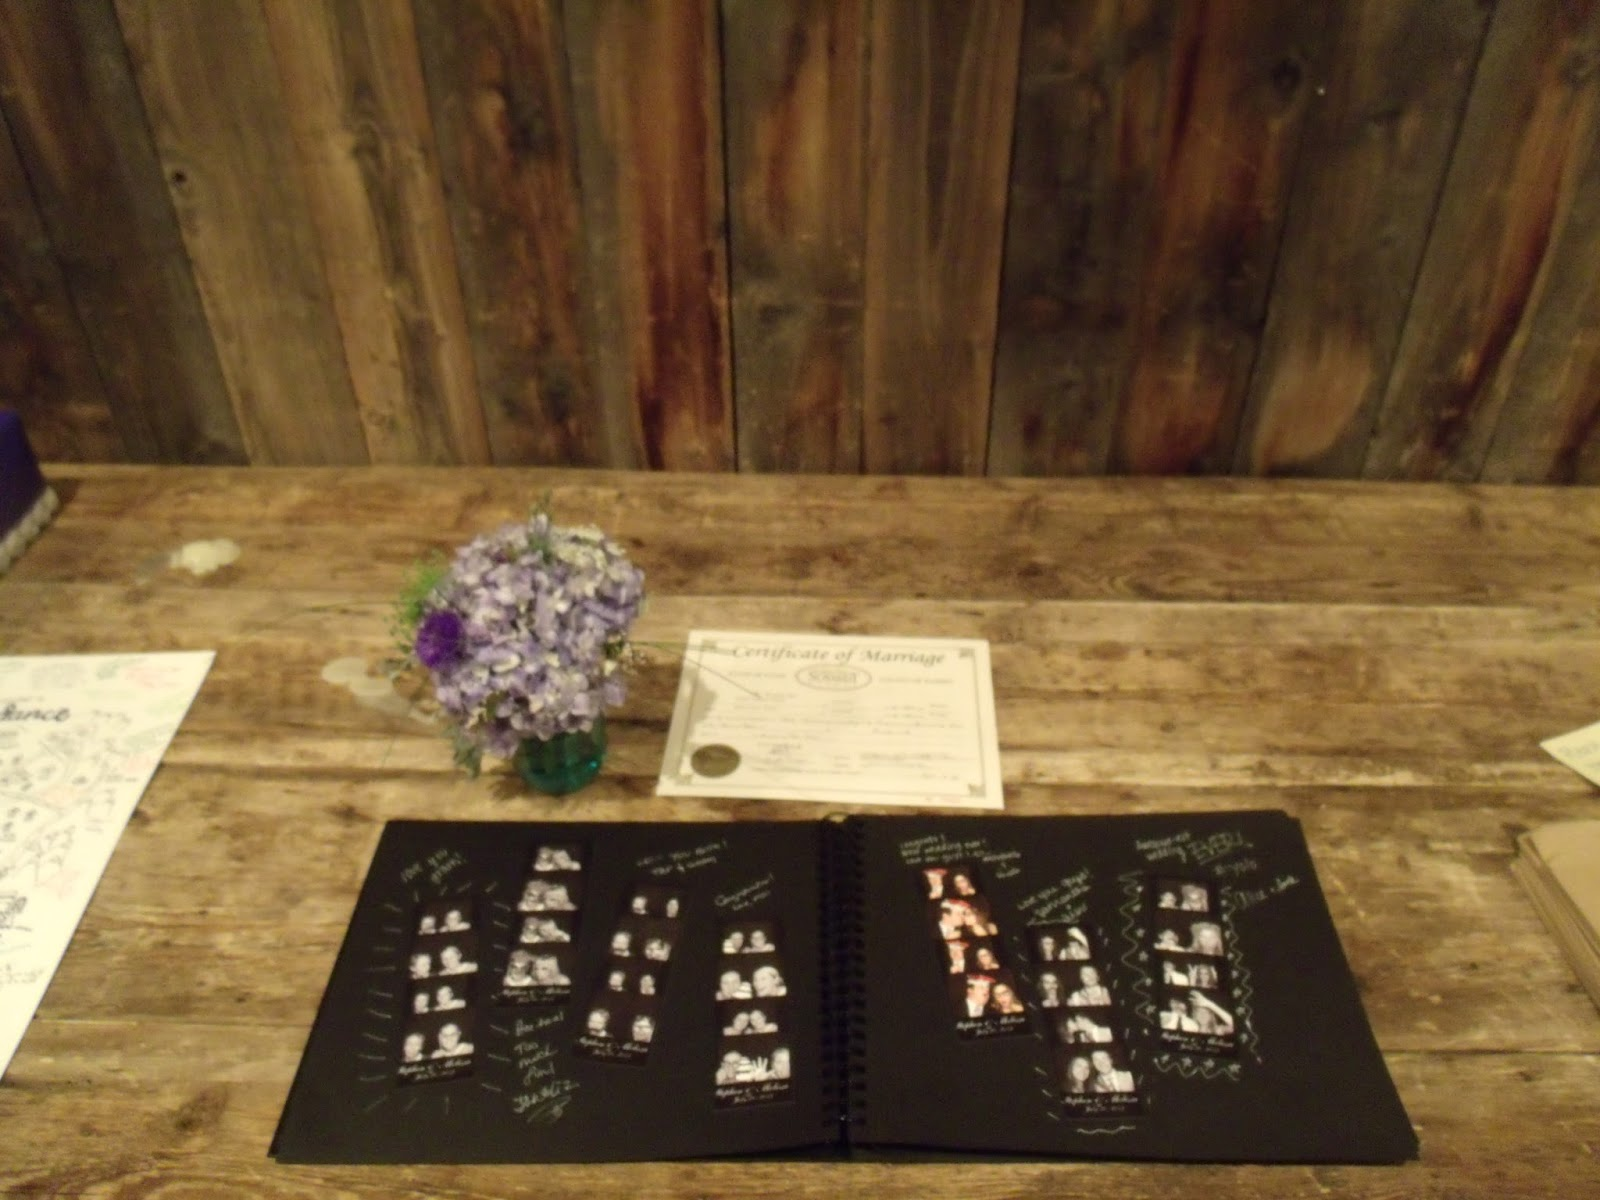 Scrapbook ideas and tips - 10 Tips For An Amazing Photo Booth Scrapbook